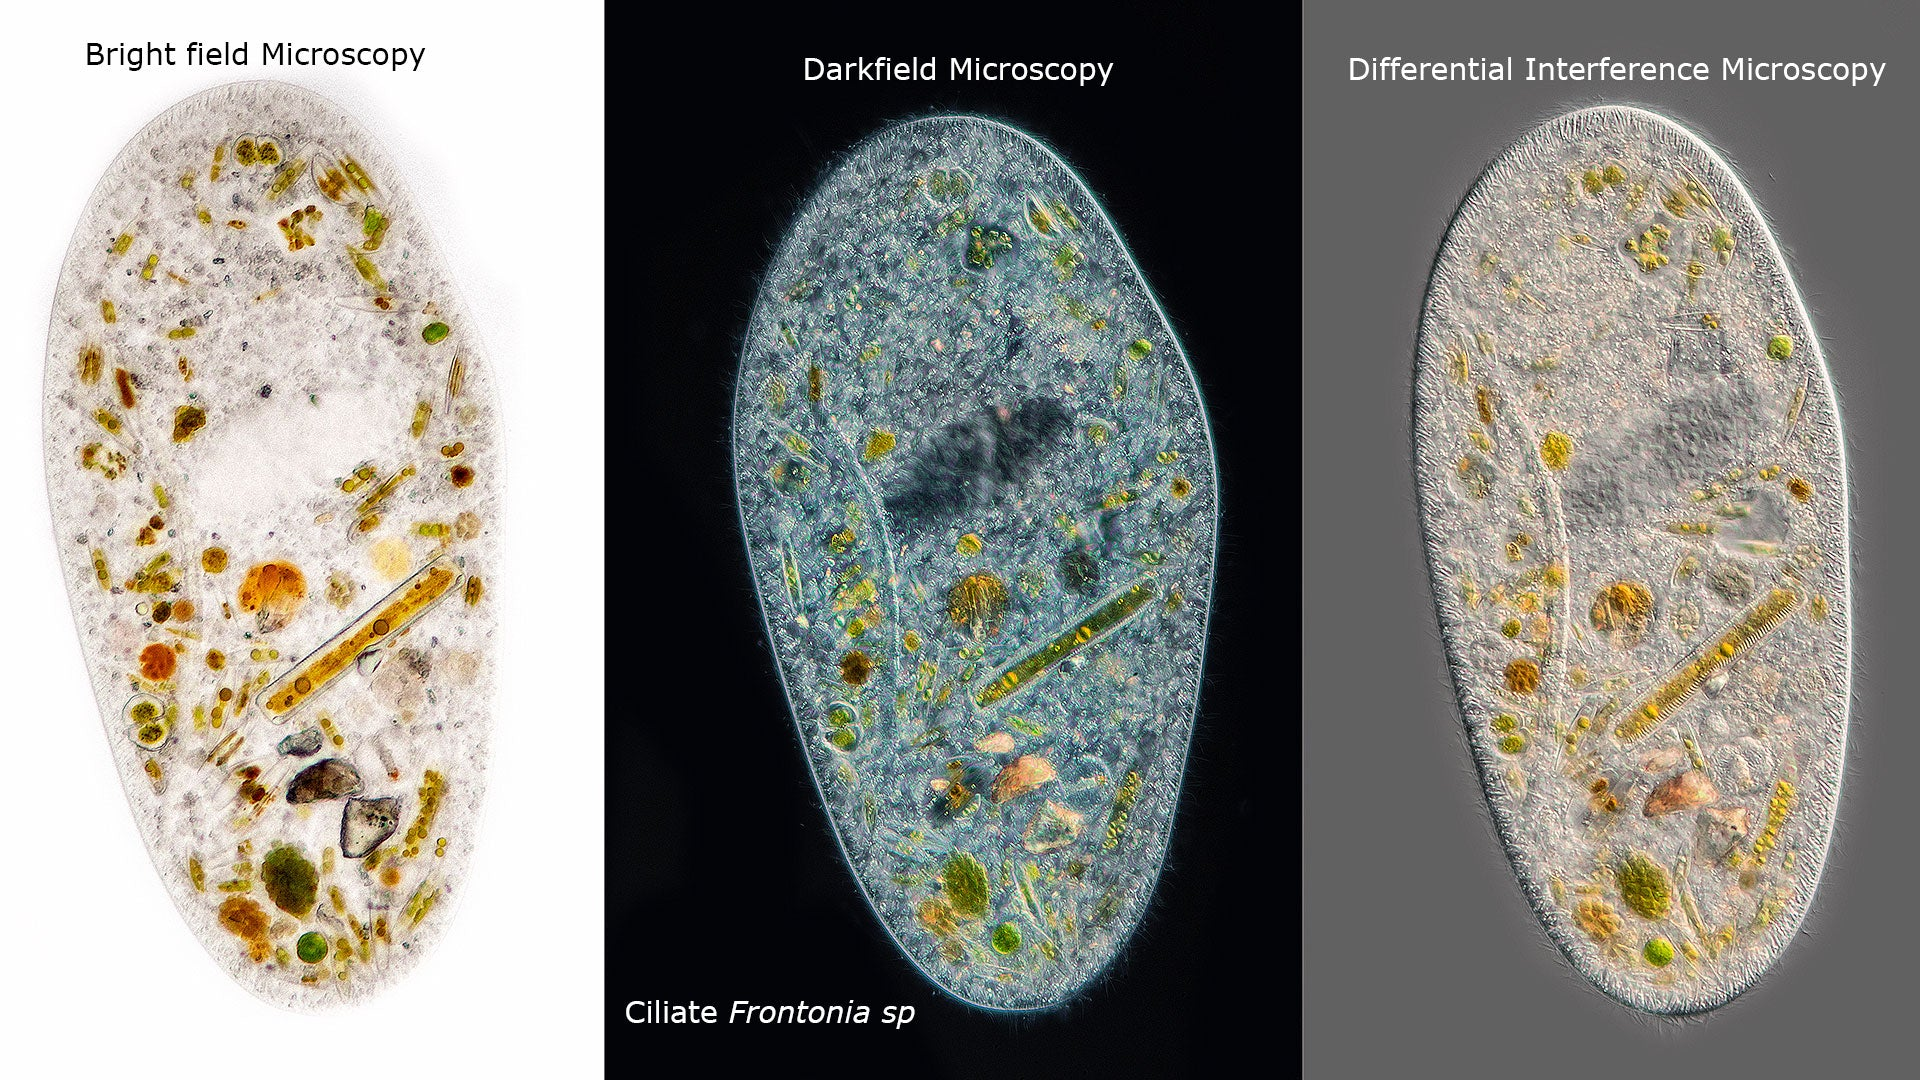 Ciliate Frontonia sp viewed with three different forms of microscopy. Frontonia are closely related to members of the genus Paramecium. Diatoms and other algae can be seen inside the cell.